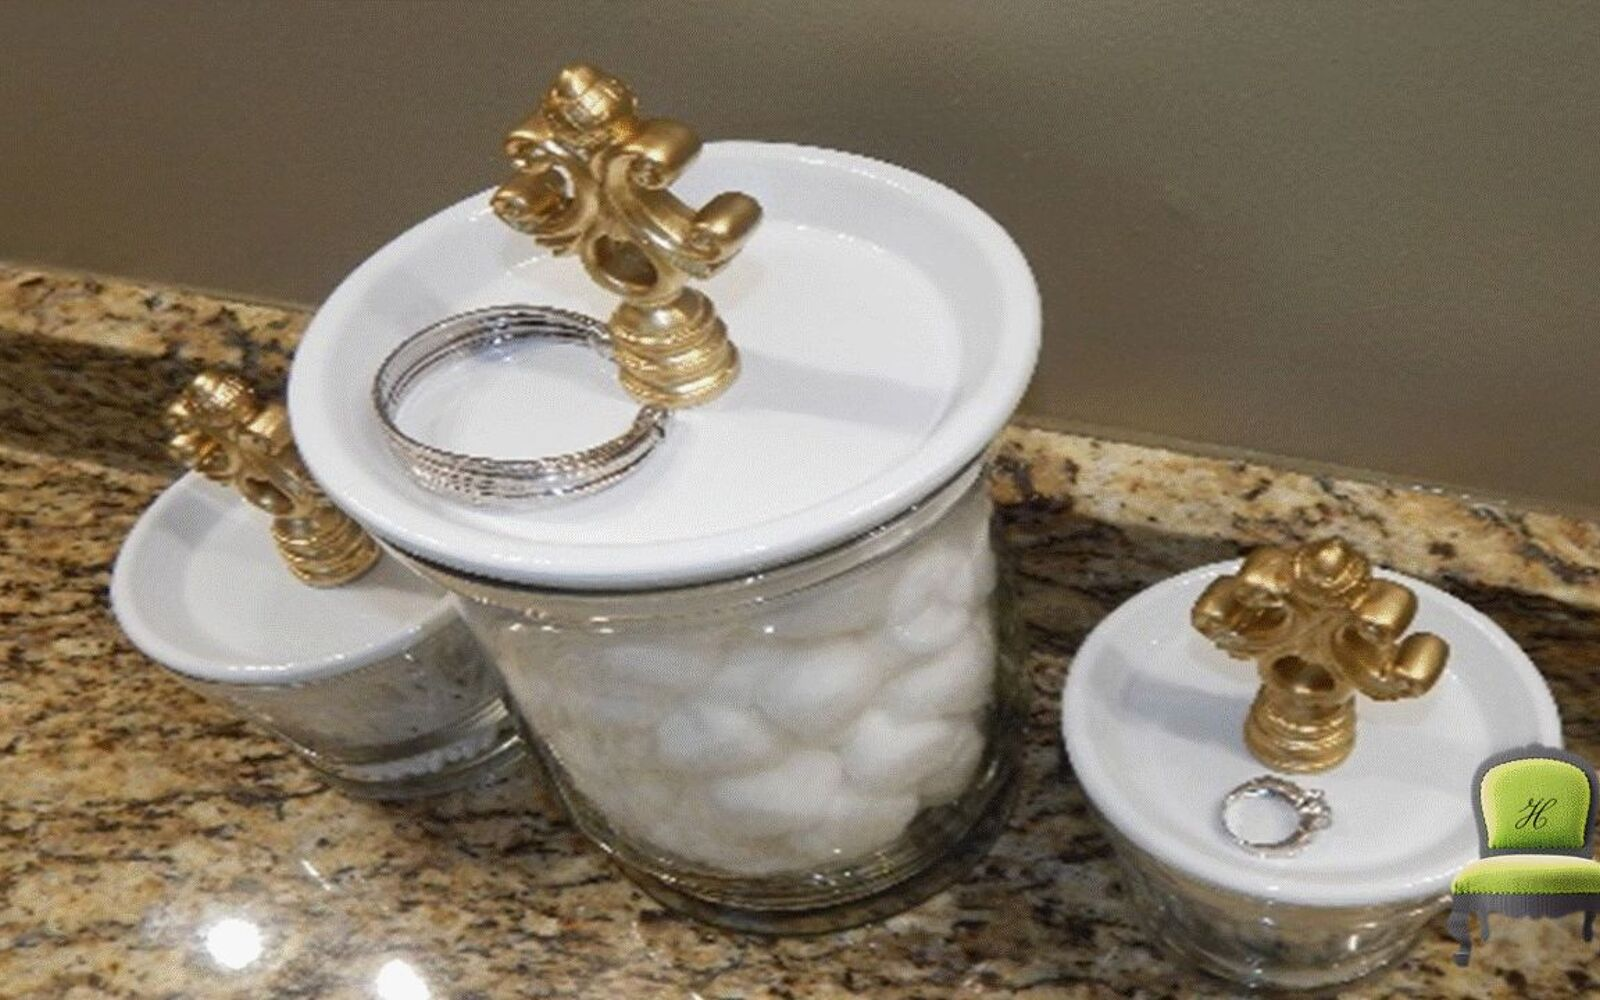 s 32 space saving storage ideas that ll keep your home organized, Turn glasses into bathroom vanity storage